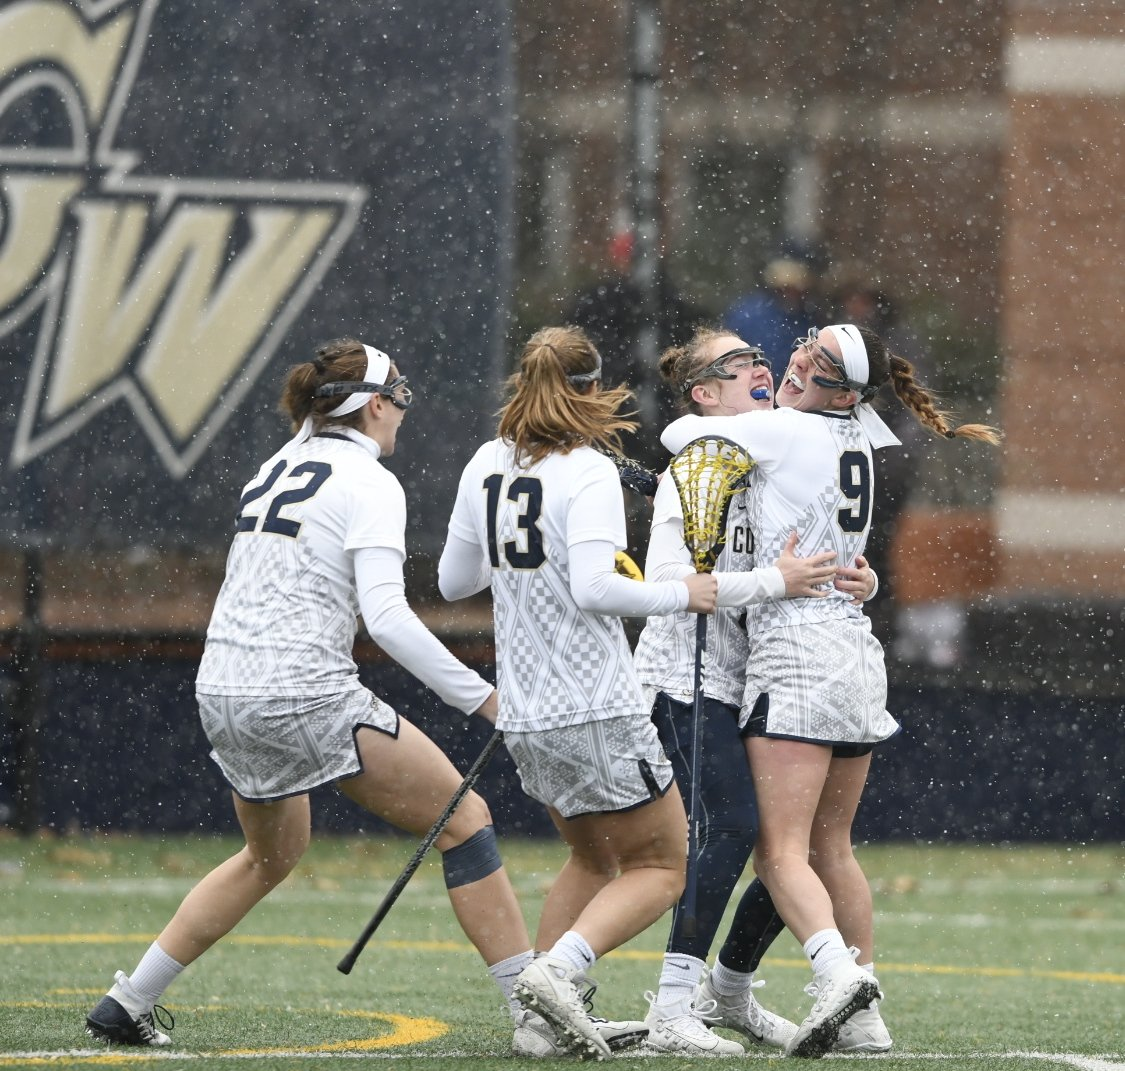 Gwsports george washington university official athletic click for image sciox Image collections